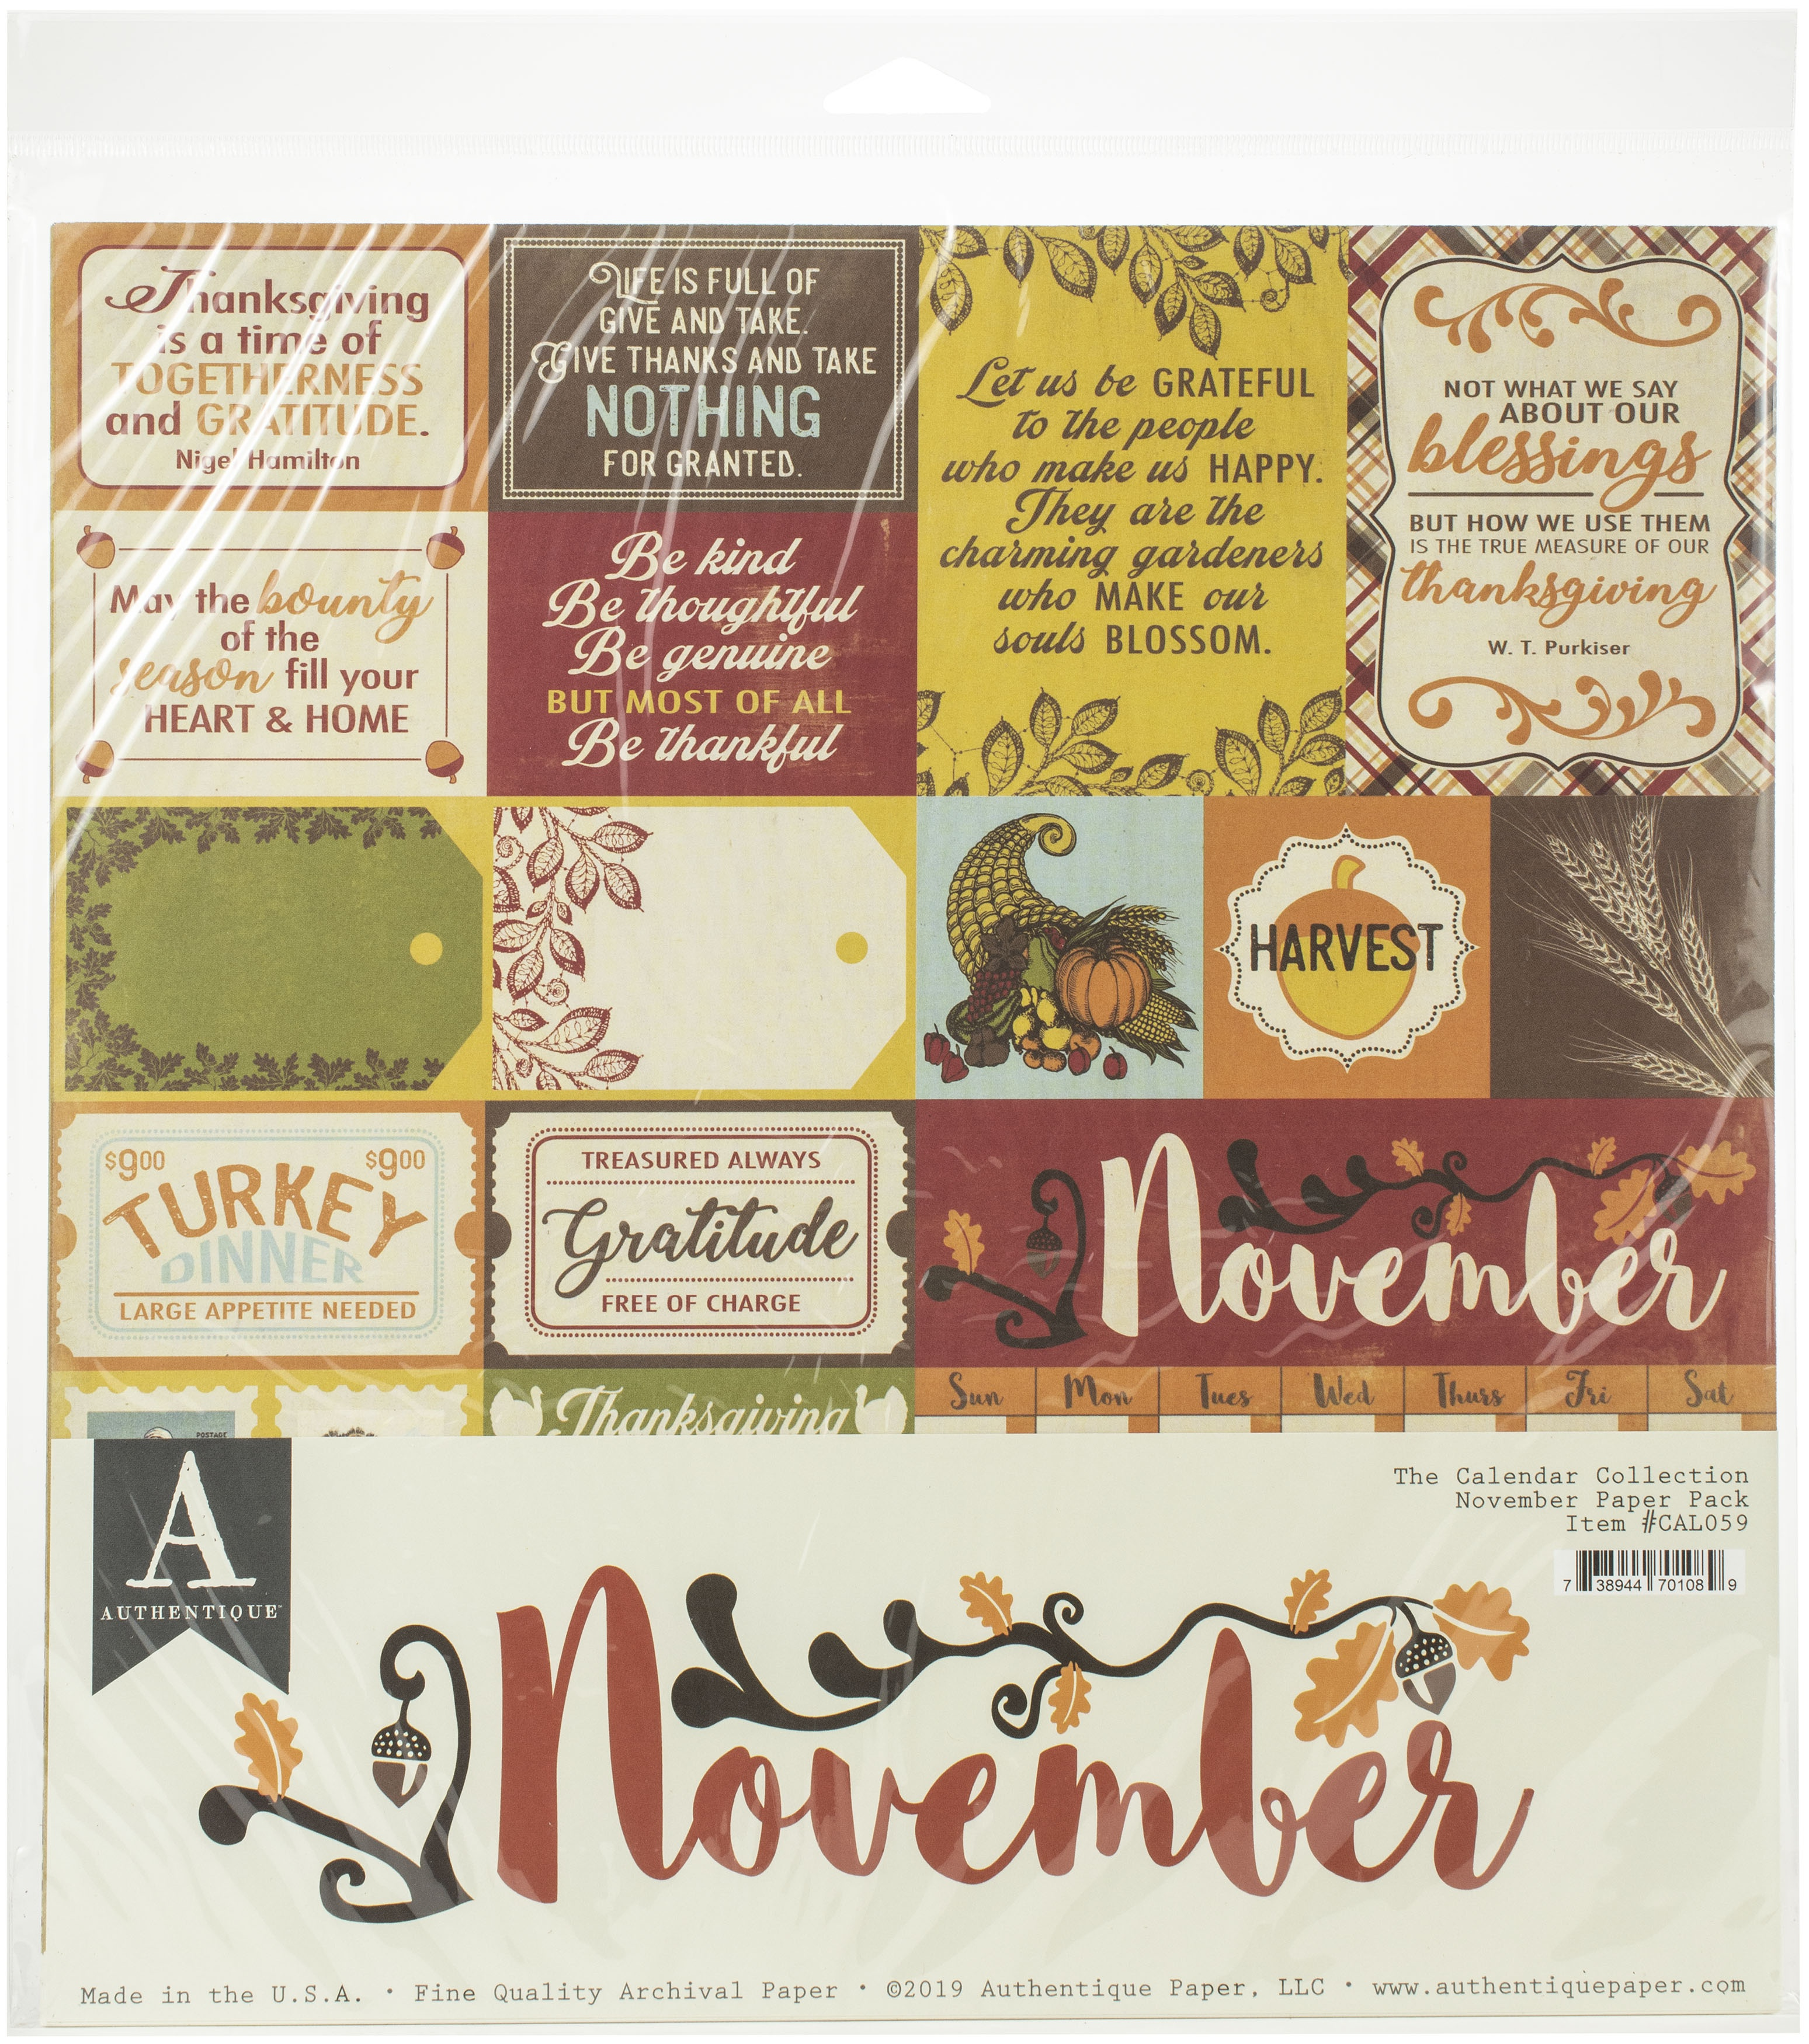 Authentique November Paper Pk